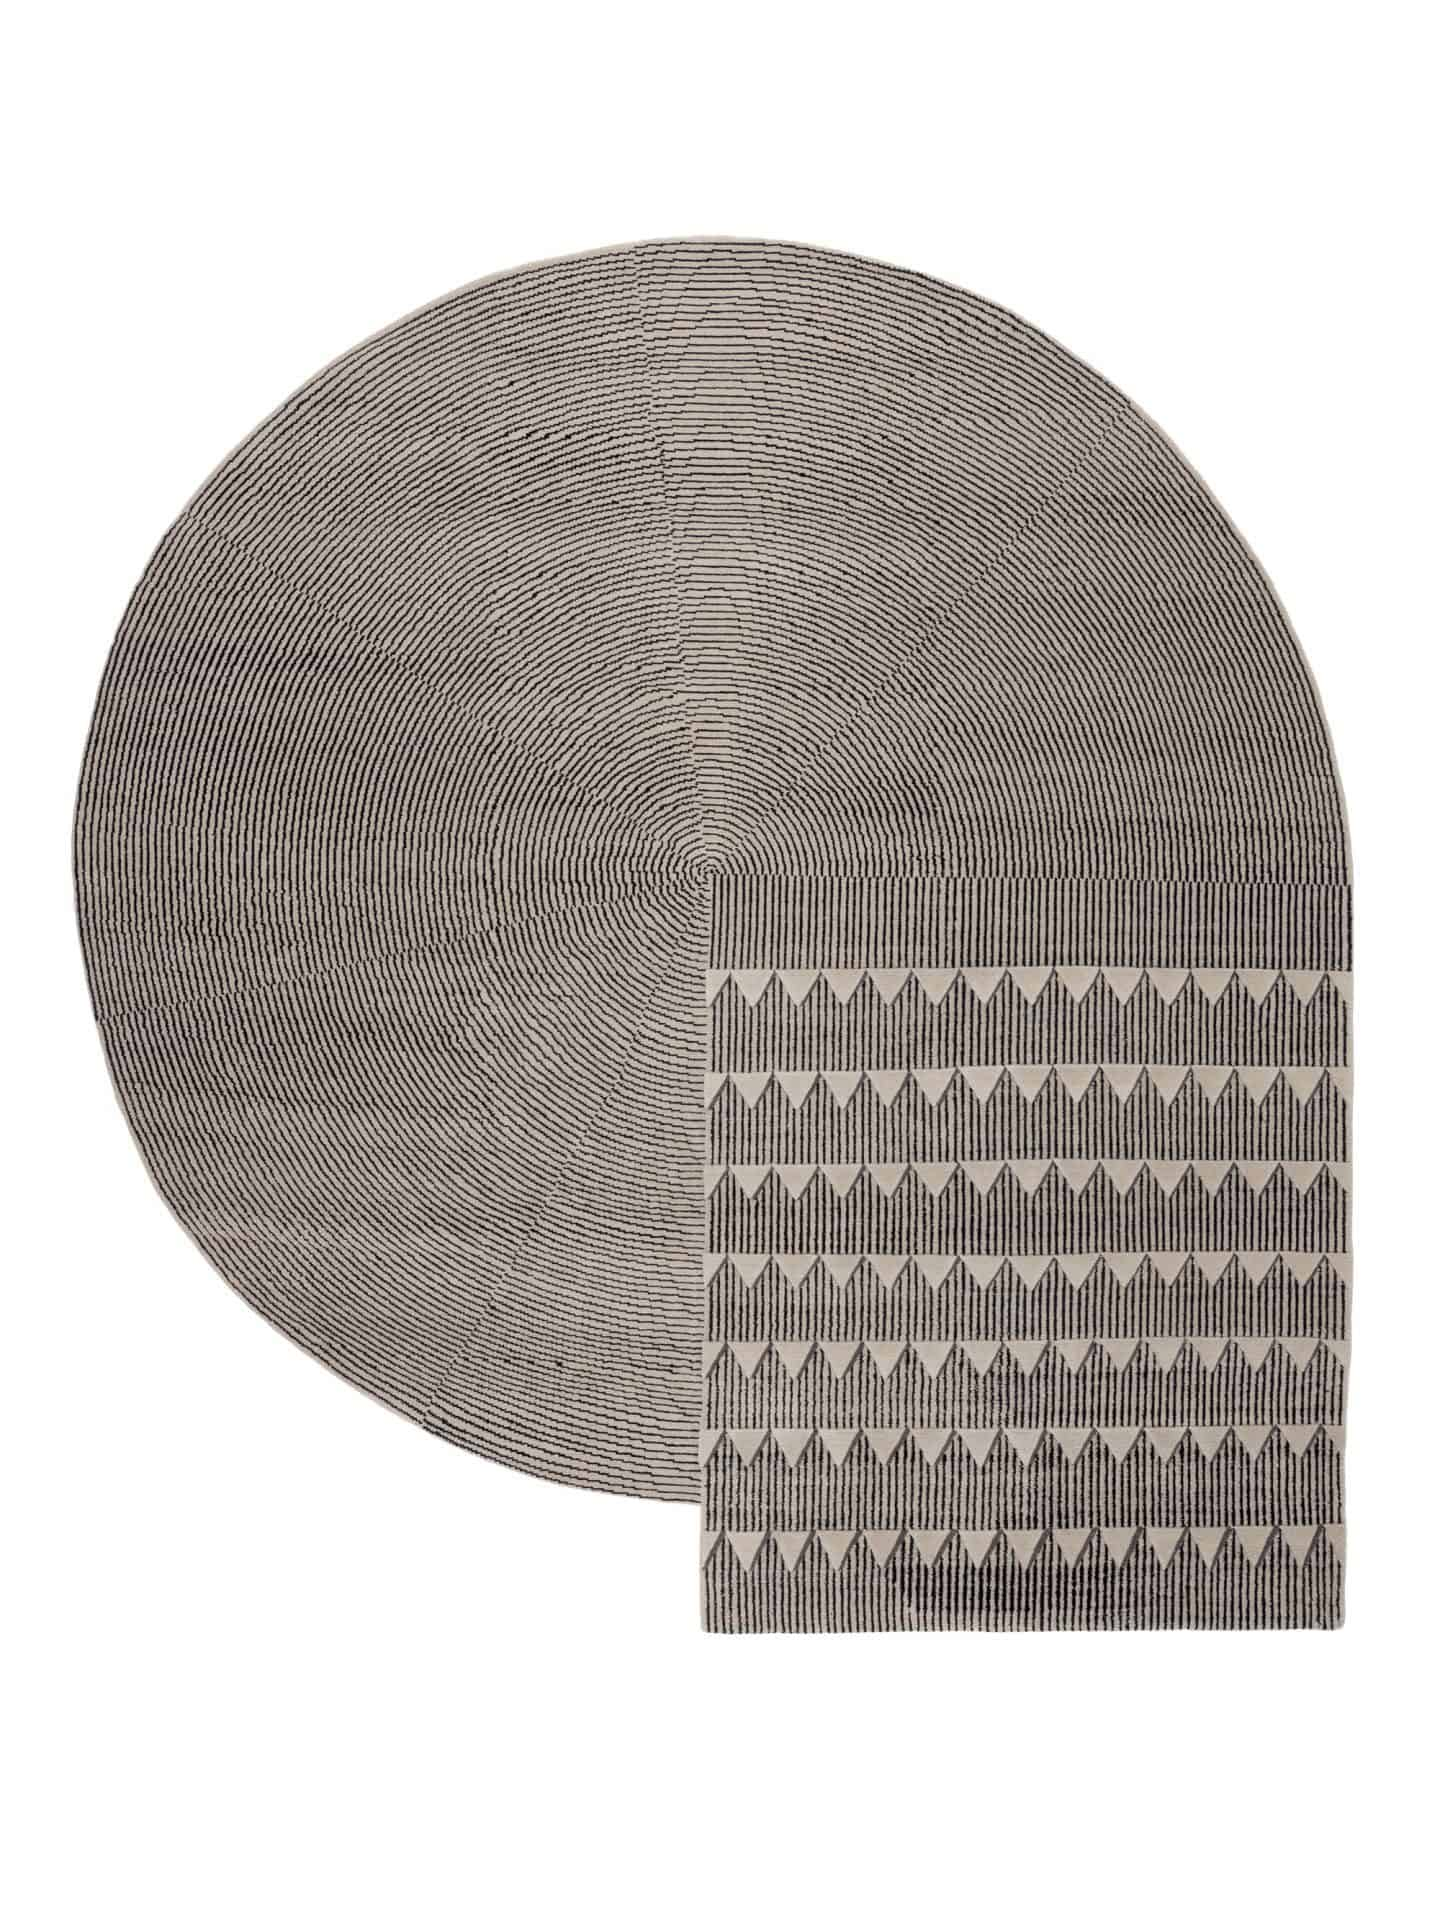 CC Tapis unusual shaped rug